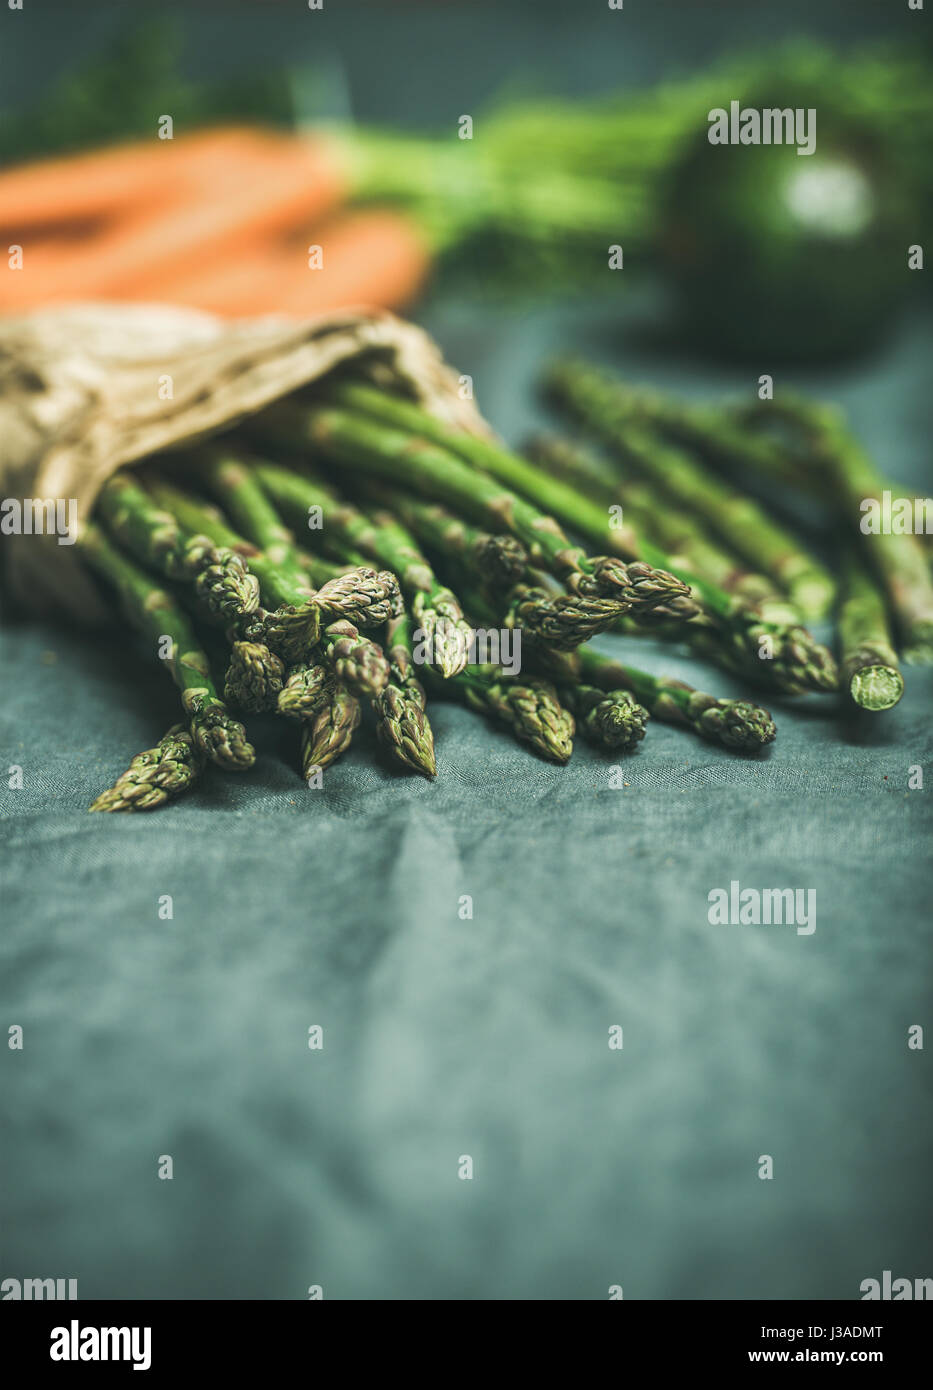 Fresh seasonal vegetables on table. Green asparagus, carrots and avocado at background over grey linen table cloth. - Stock Image